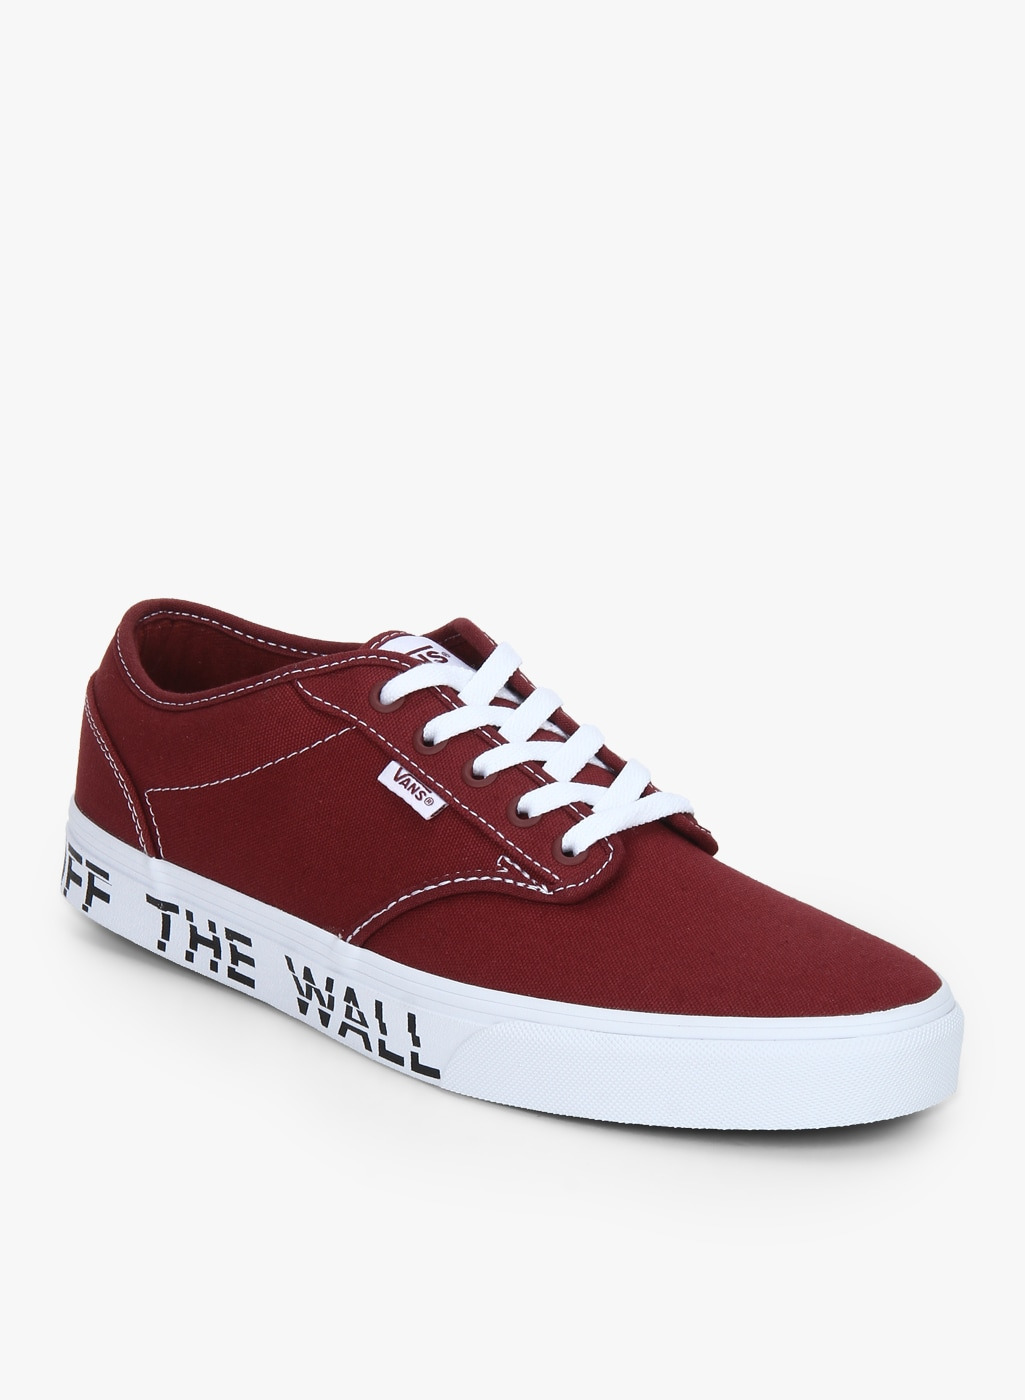 df7791f402 Vans Canvas Shoes - Buy Vans Canvas Shoes Online in India